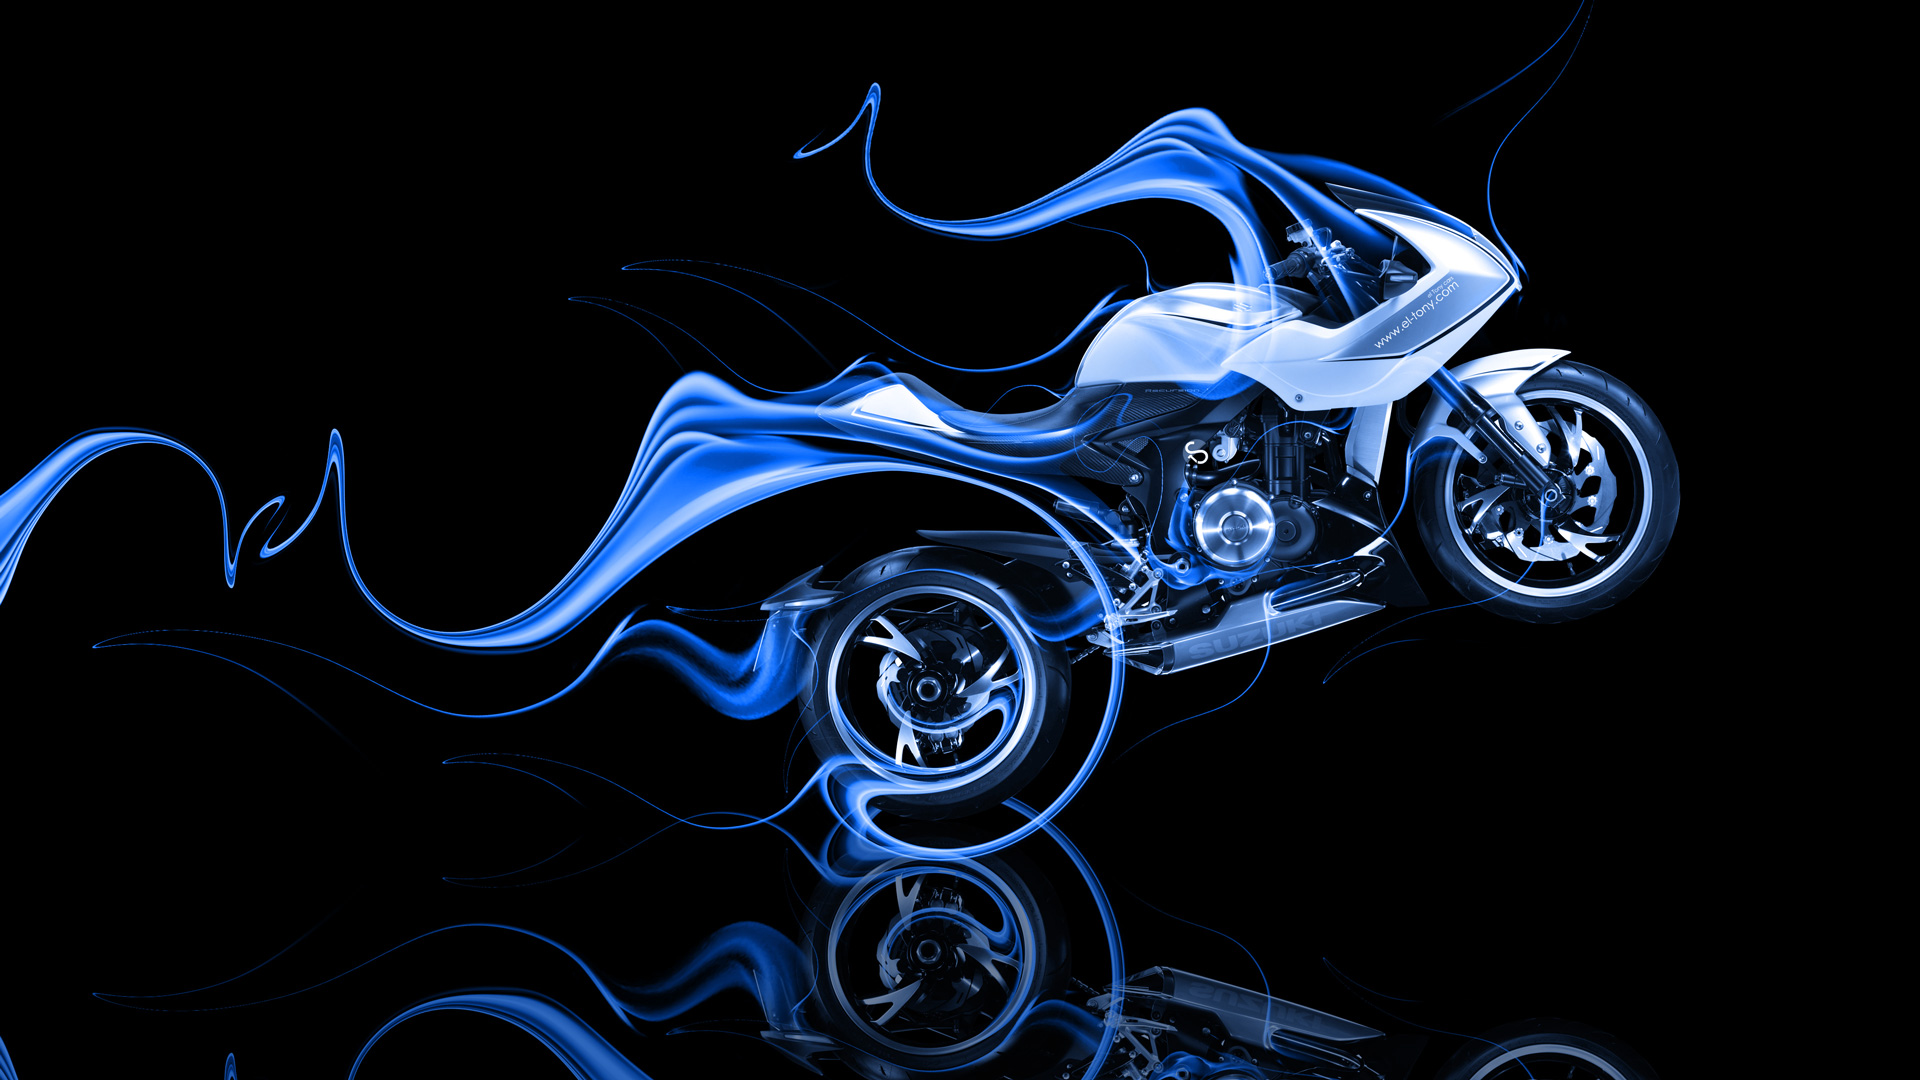 Ordinaire ... Moto Suzuki Recursion Side Blue Fire Abstract Bike  ...